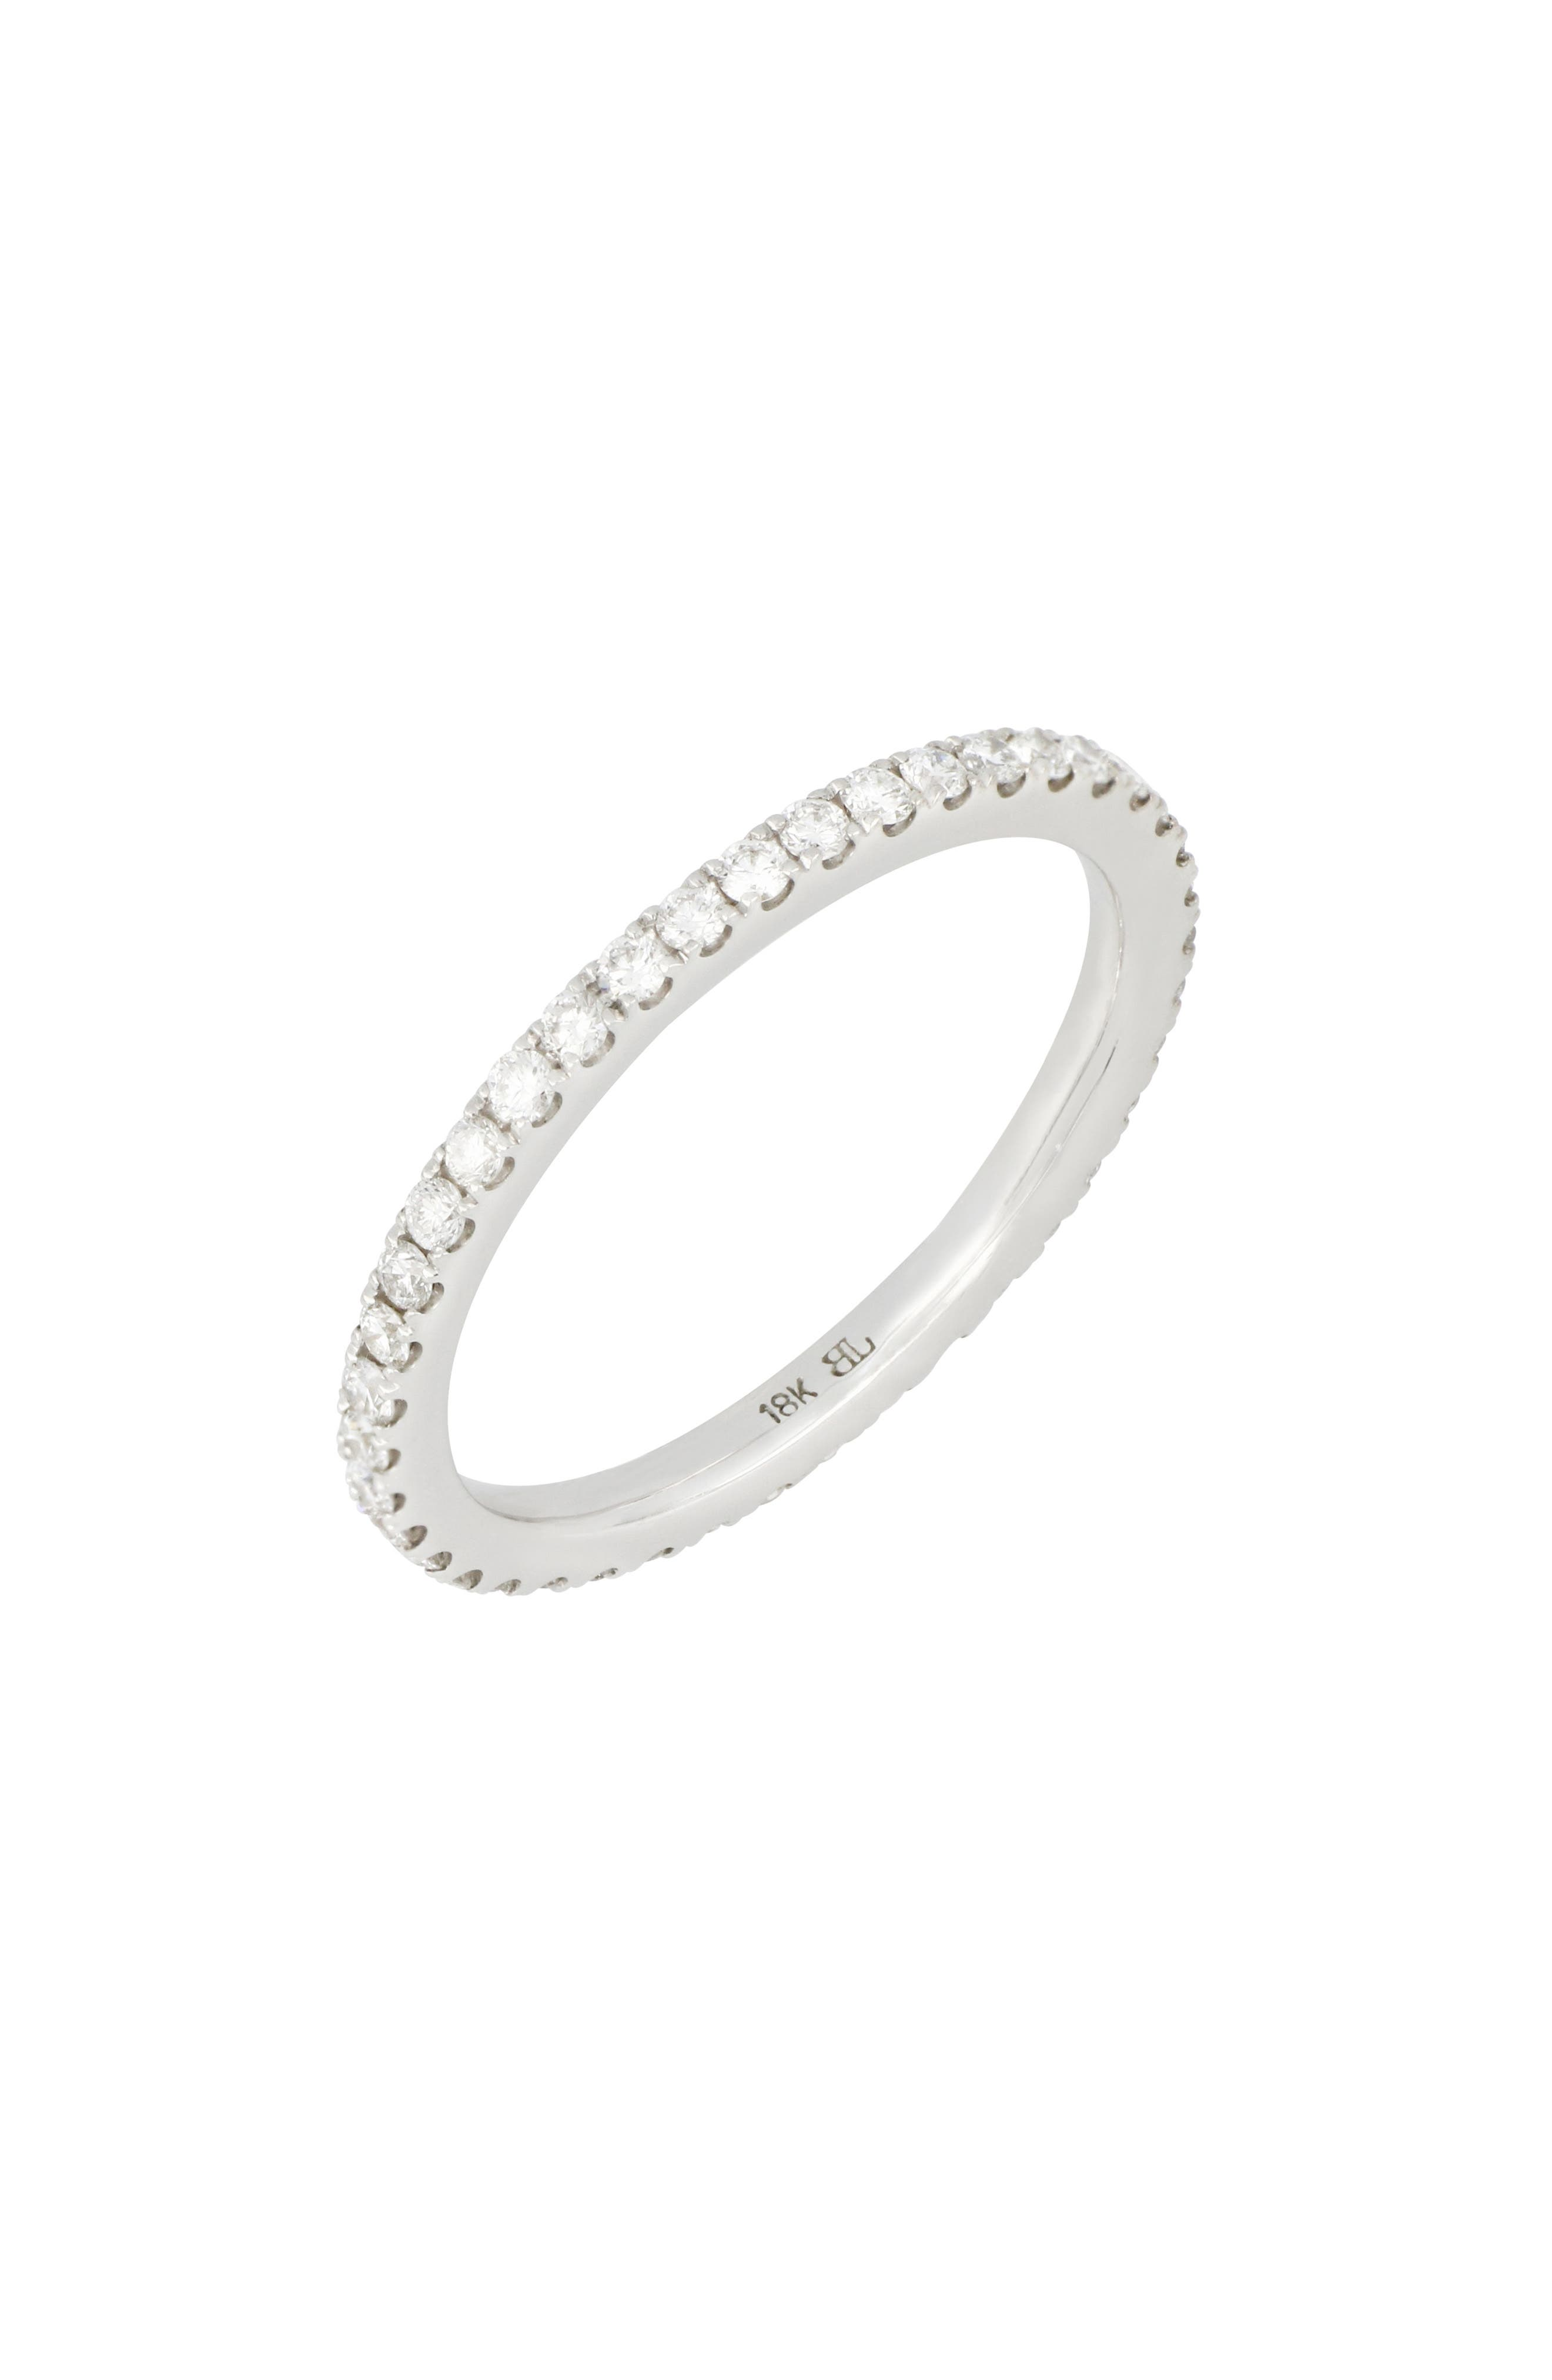 A timeless symbol of a love that lasts forever, this handcrafted eternity band features 42 round-cut diamonds set in gleaming 18-karat gold. Style Name: Bony Levy Diamond Eternity Band Ring (Nordstrom Exclusive). Style Number: 5795448. Available in stores.